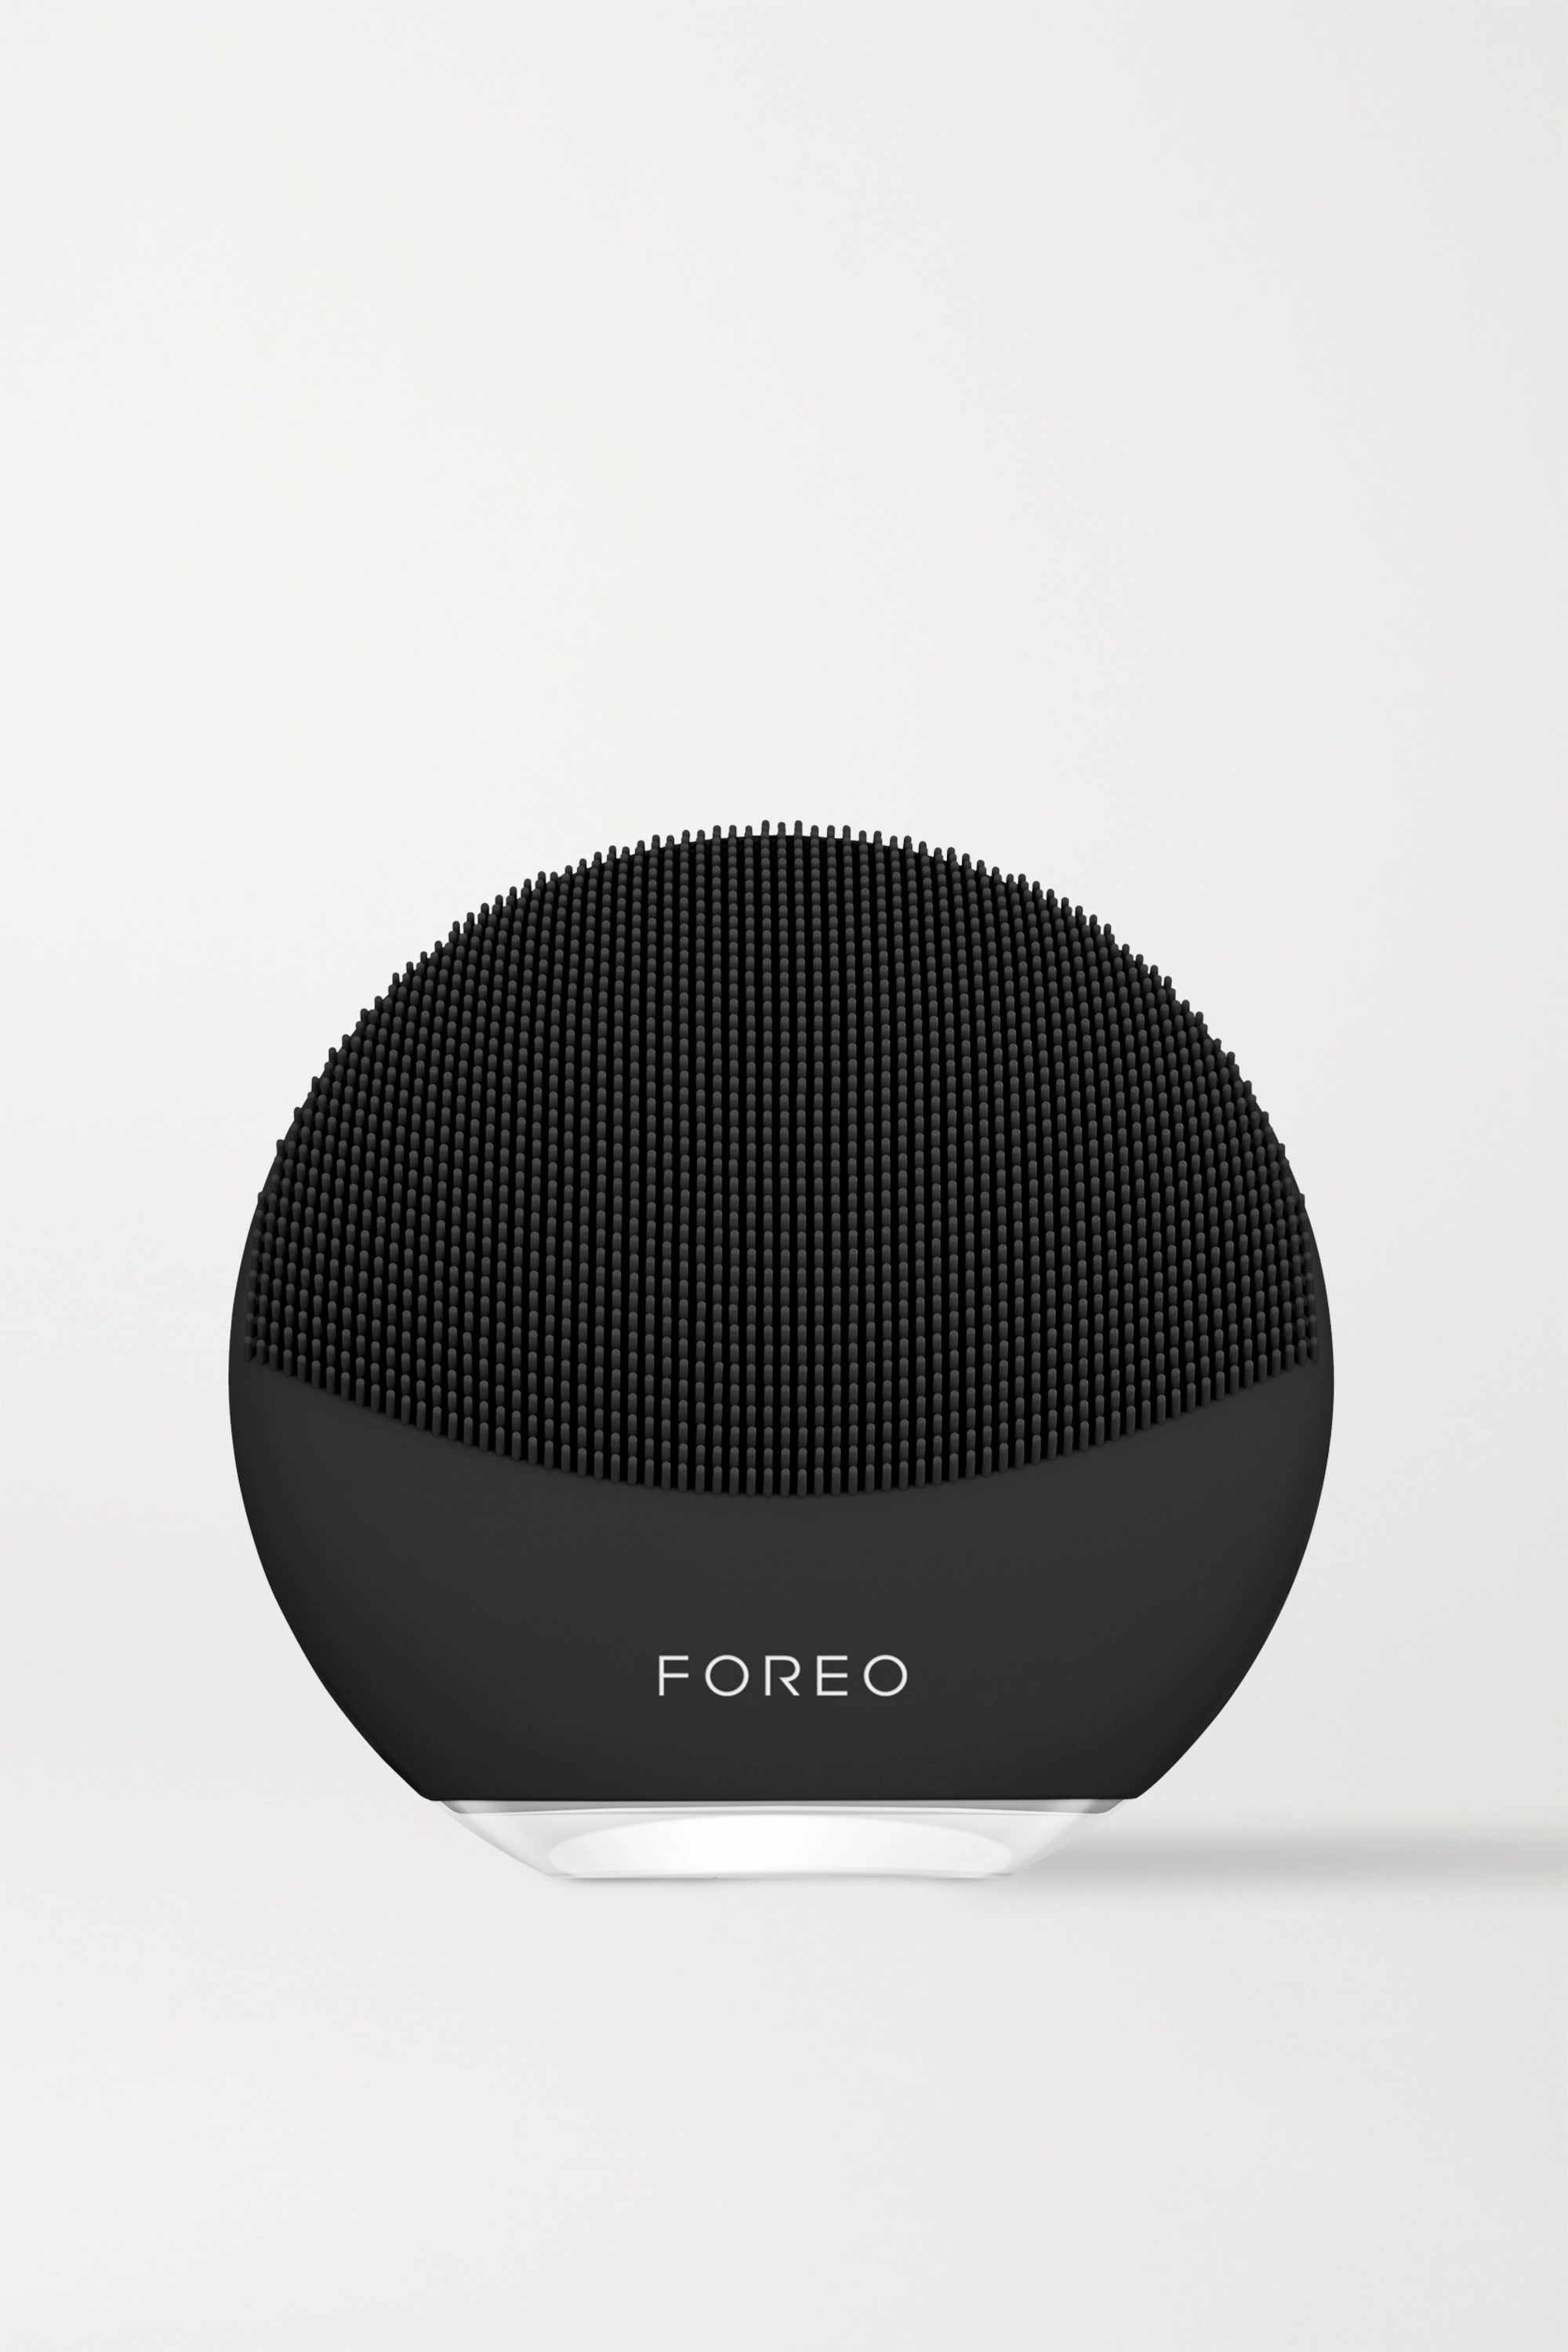 Foreo LUNA Mini 3 Dual-Sided Face Brush for All Skin Types - Midnight